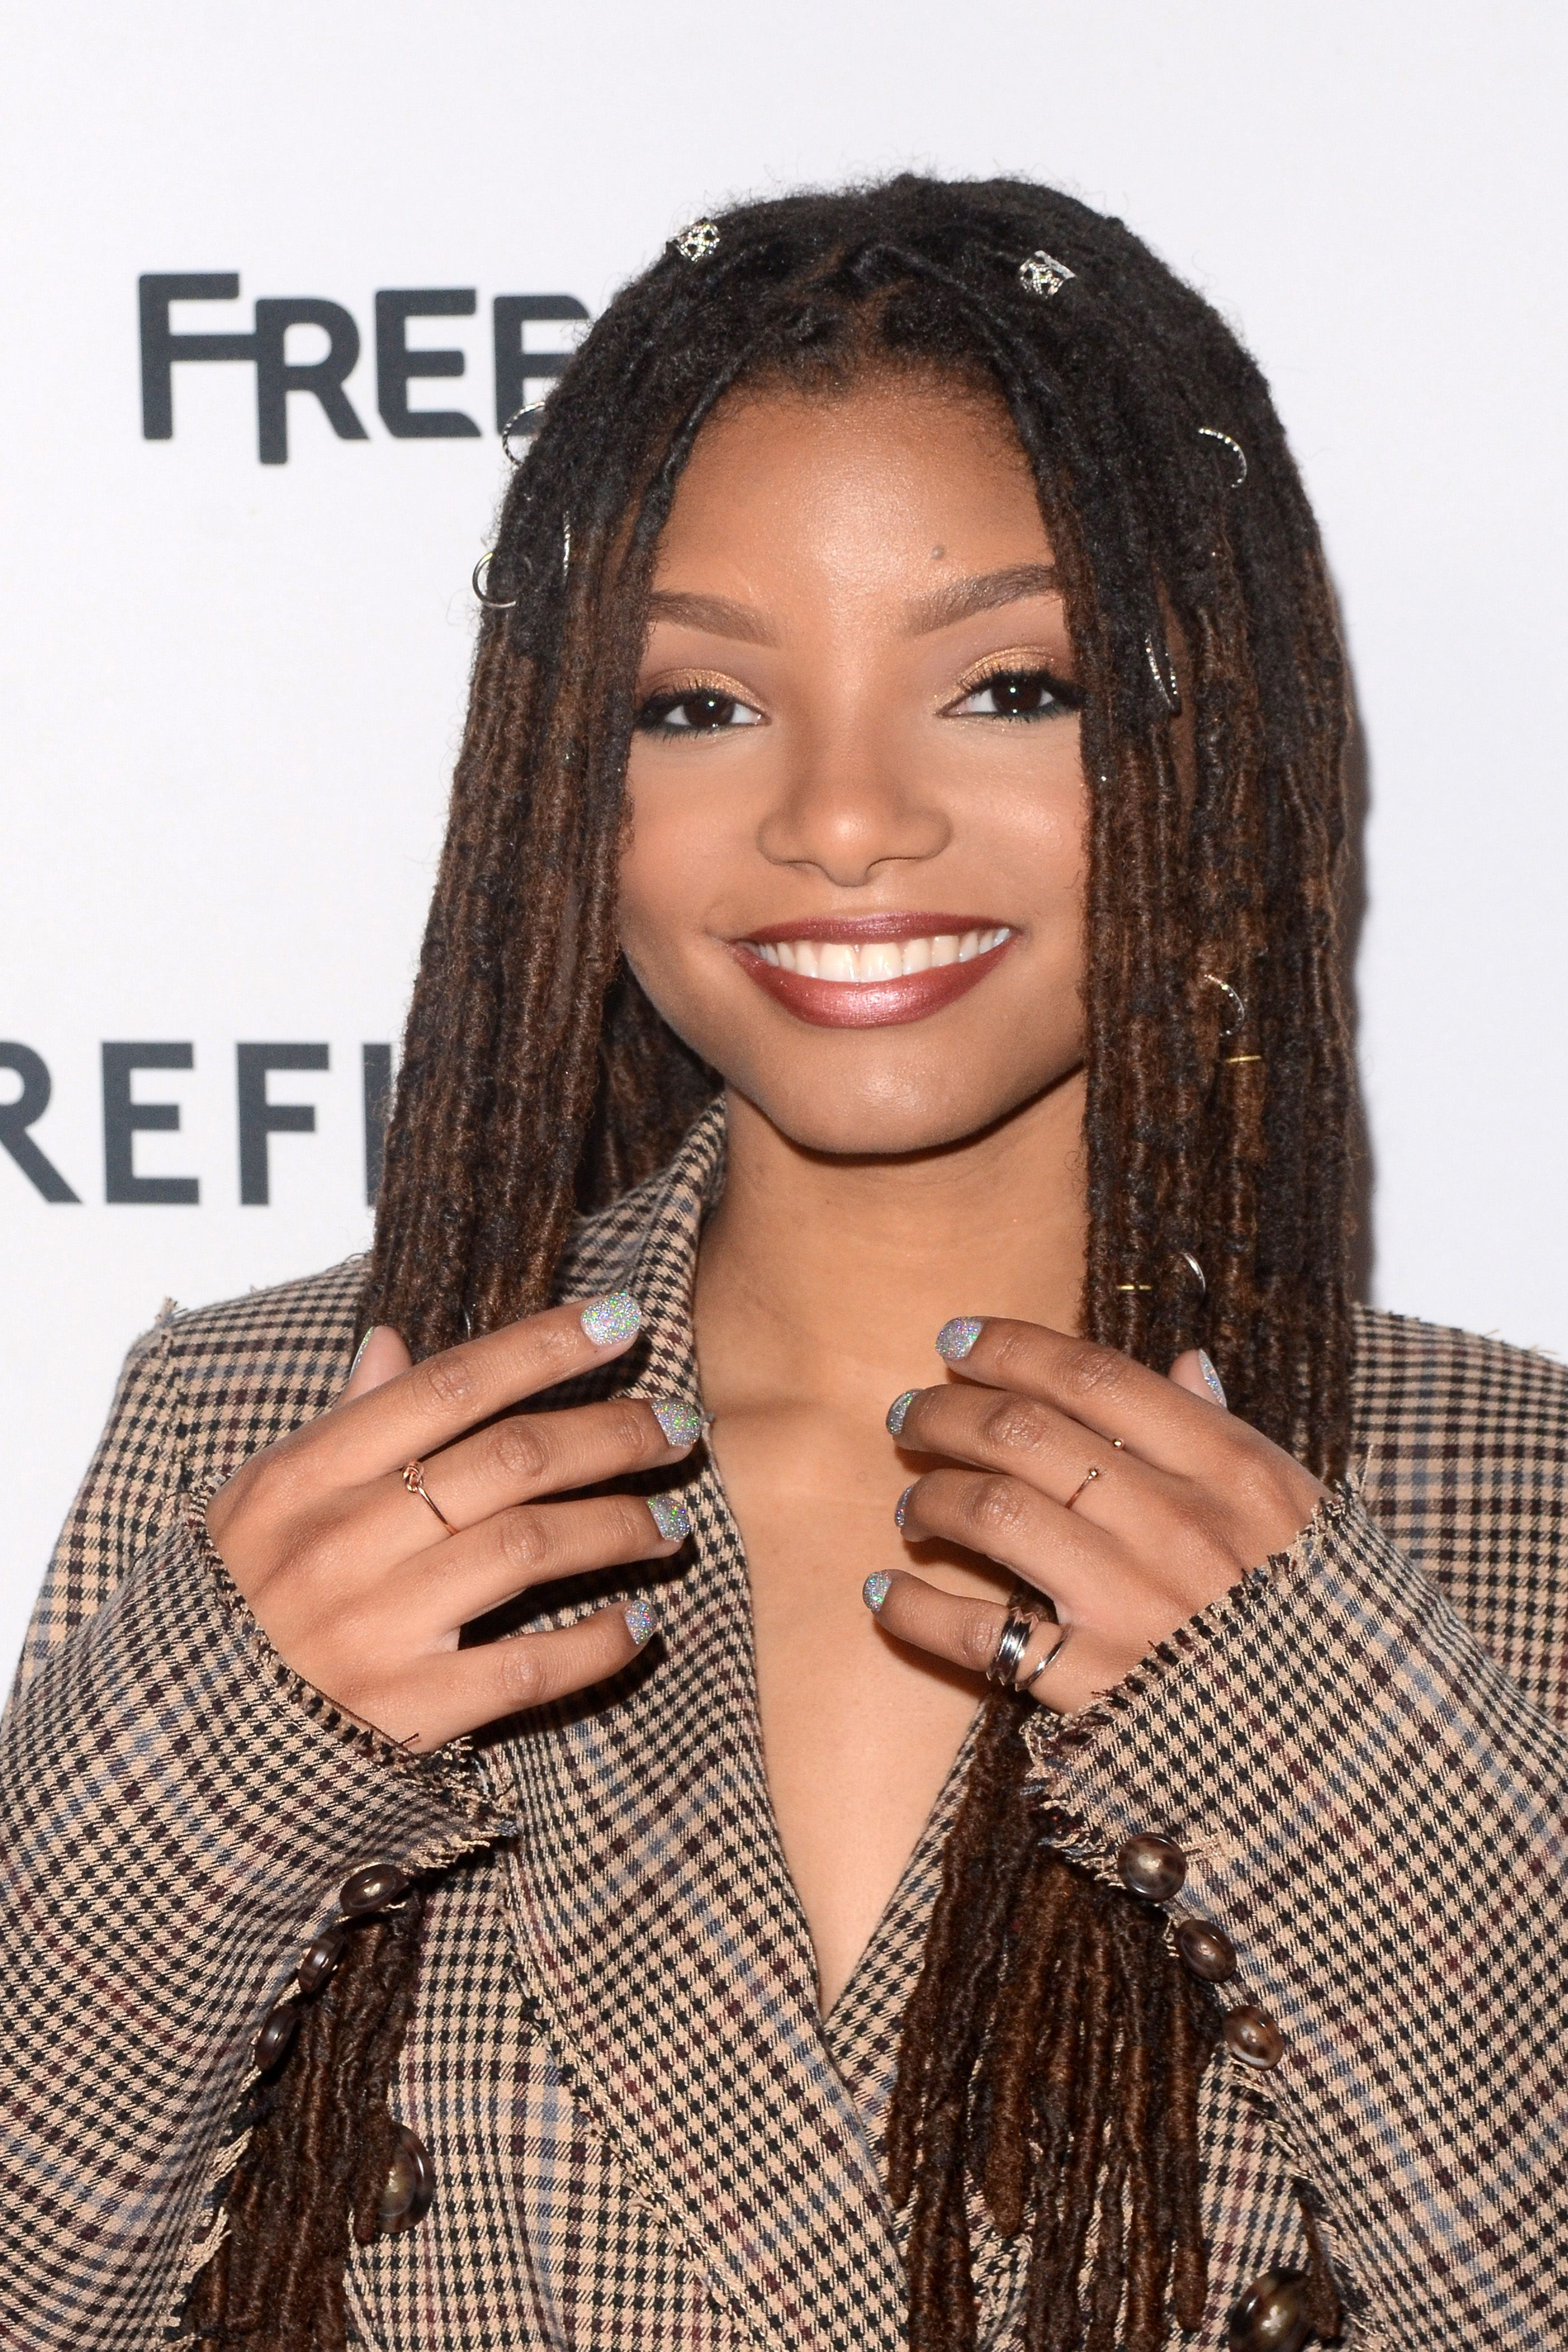 """Halle Bailey at the """"Grown-ish"""" premiere screening on December 13, 2017 in Hollywood. 